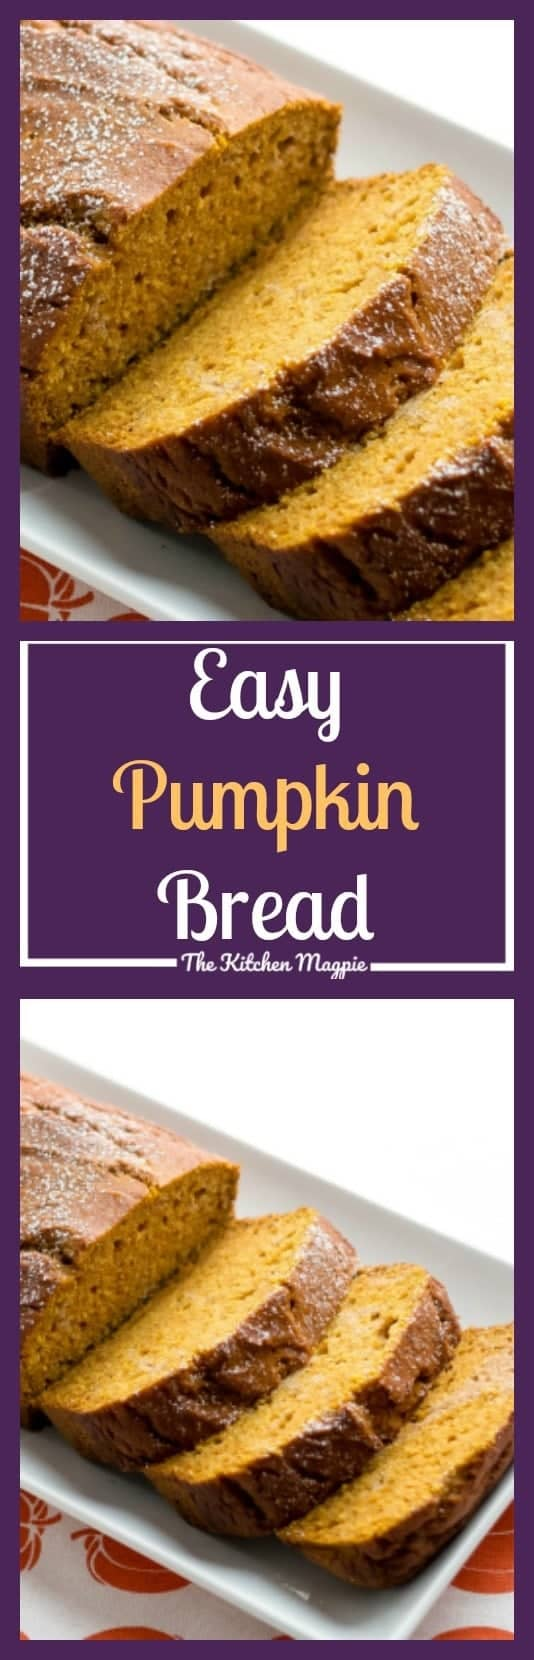 Delicious pumpkin bread (or loaf) that uses half oil and half apple sauce. This is one of those recipes you definitely need in your recipe box! From @kitchenmagpie